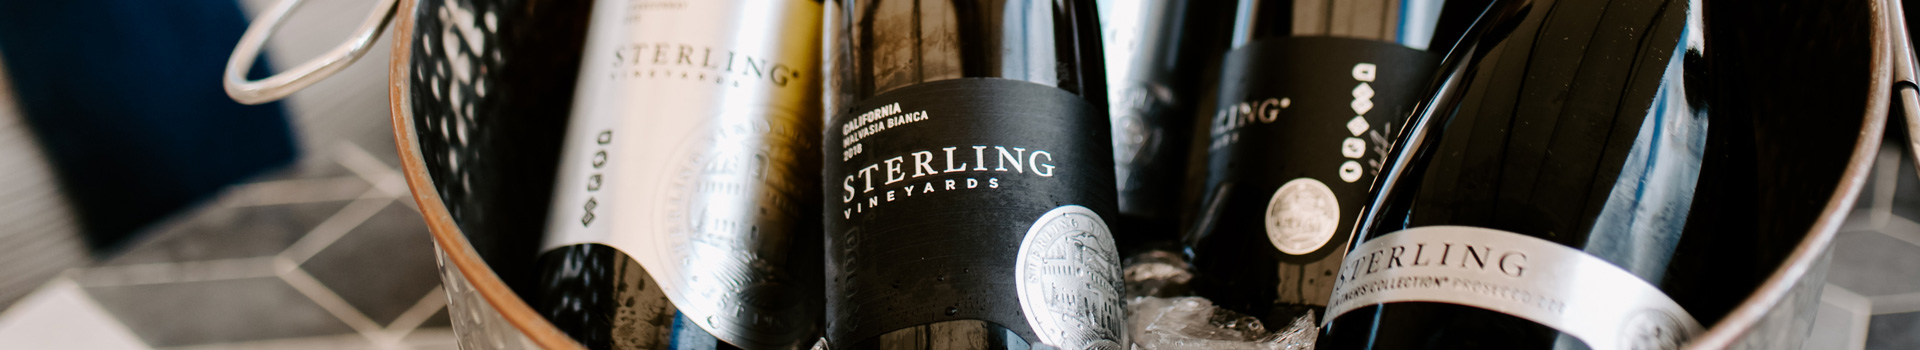 Sterling Winery Exclusives in Ice Bucket